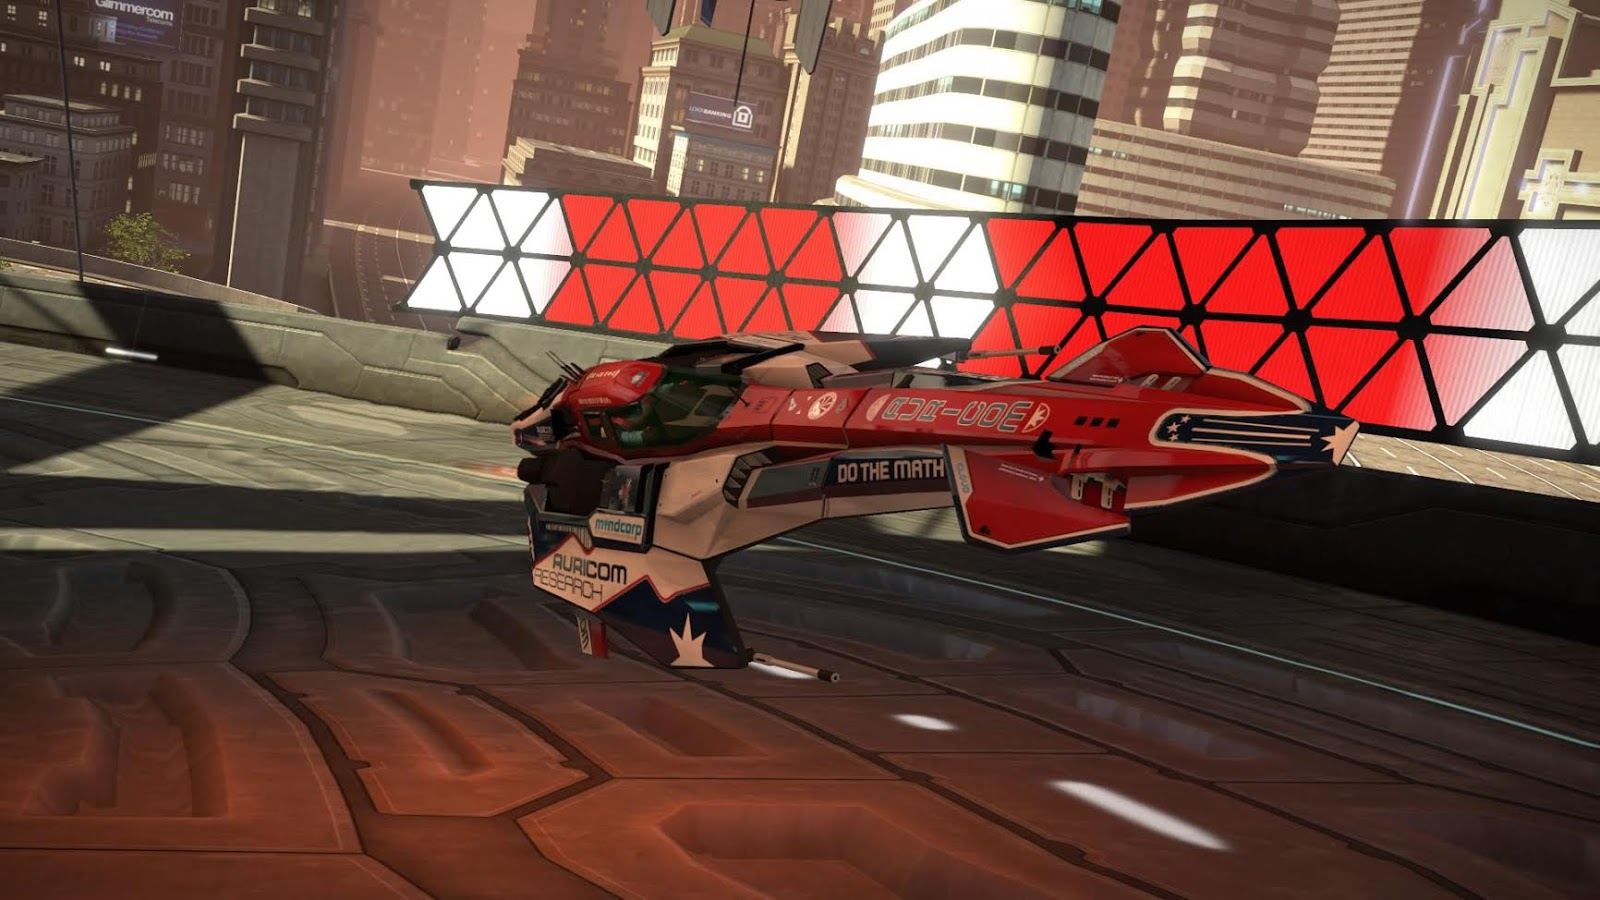 Desvelada la banda sonora de WipEout Omega Collection